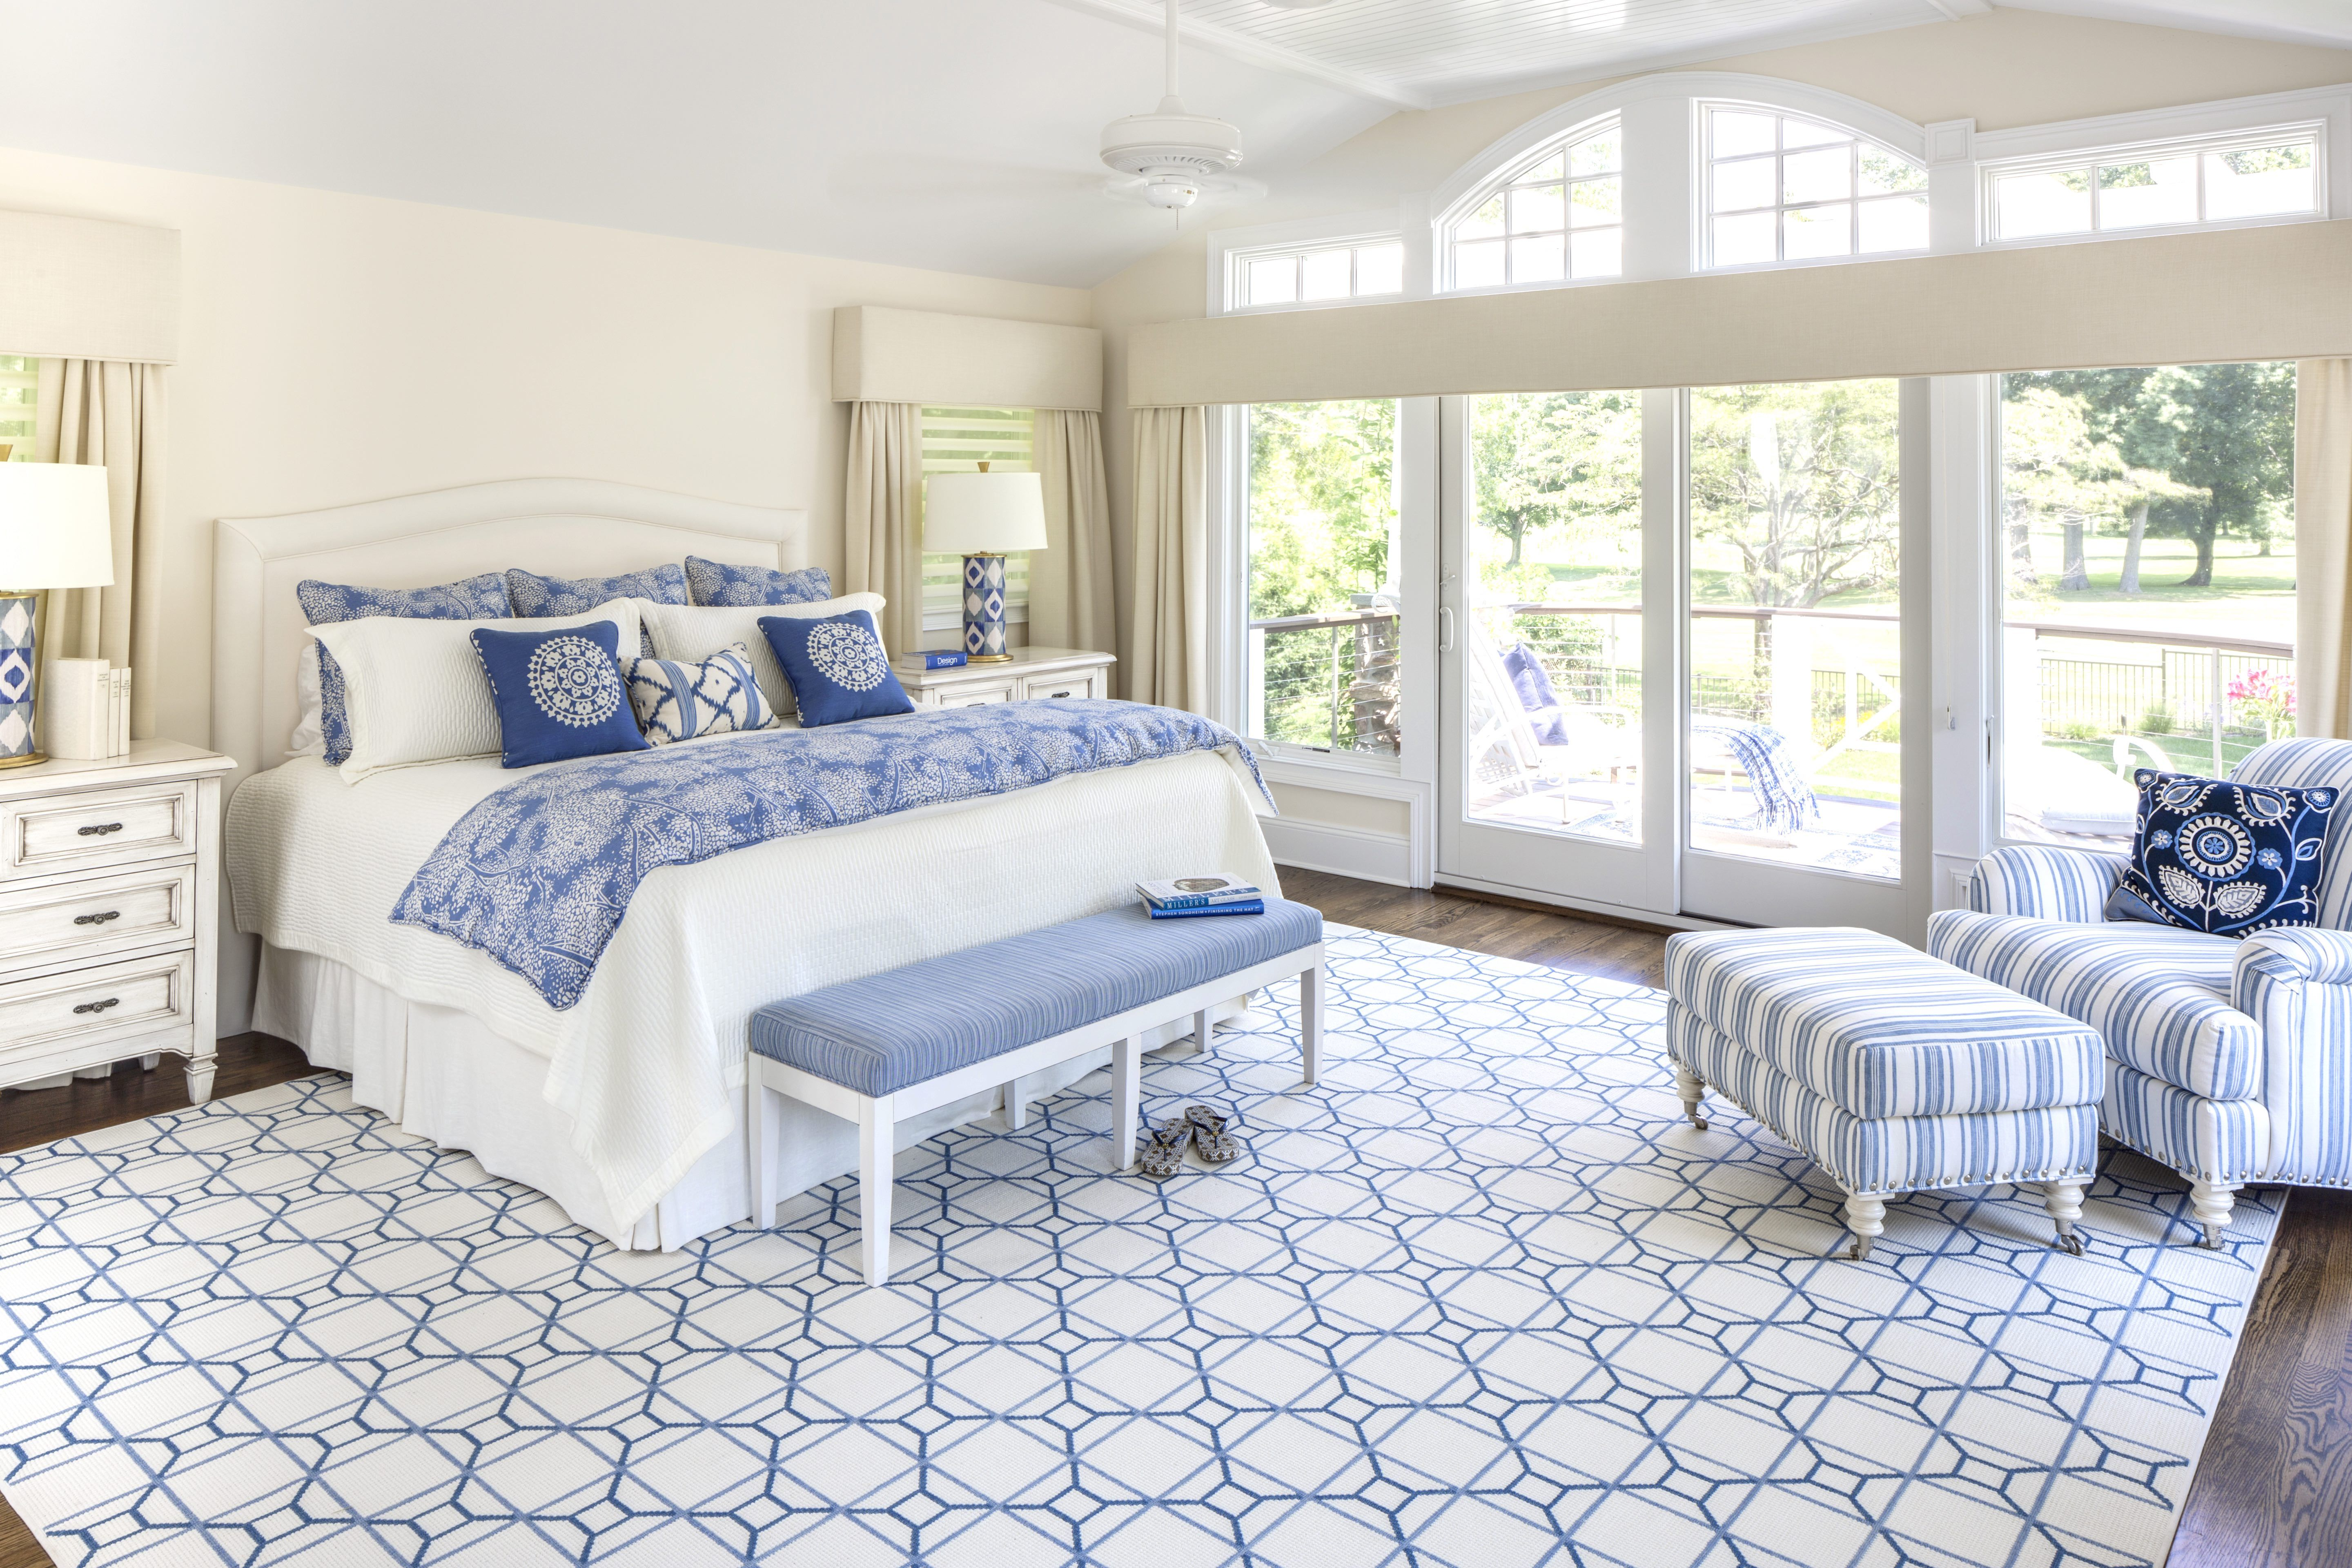 12 Gorgeous Master Bedrooms with Outdoor Spaces